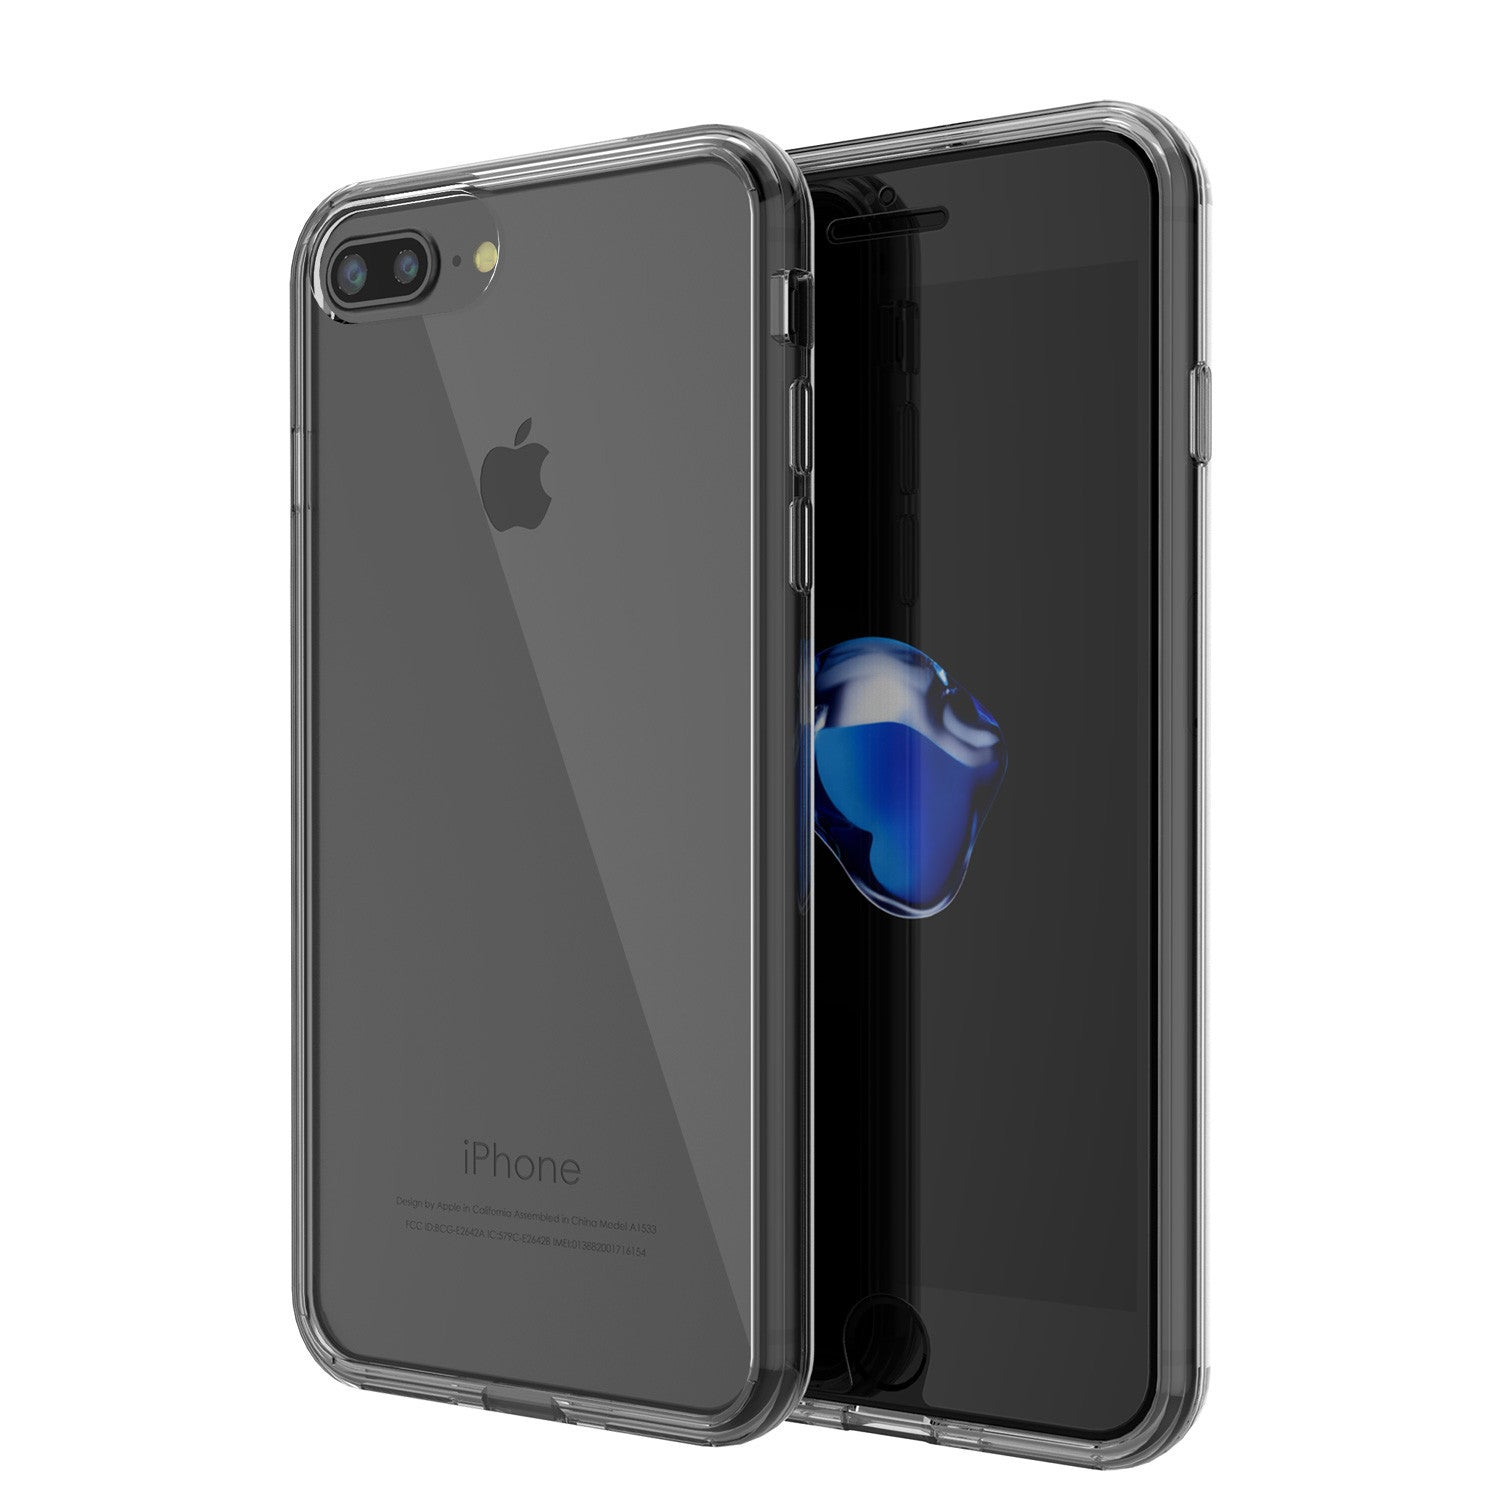 iPhone 7+ Plus Case Punkcase® LUCID 2.0 Crystal Black Series w/ SHIELD Screen Protector | Ultra Fit